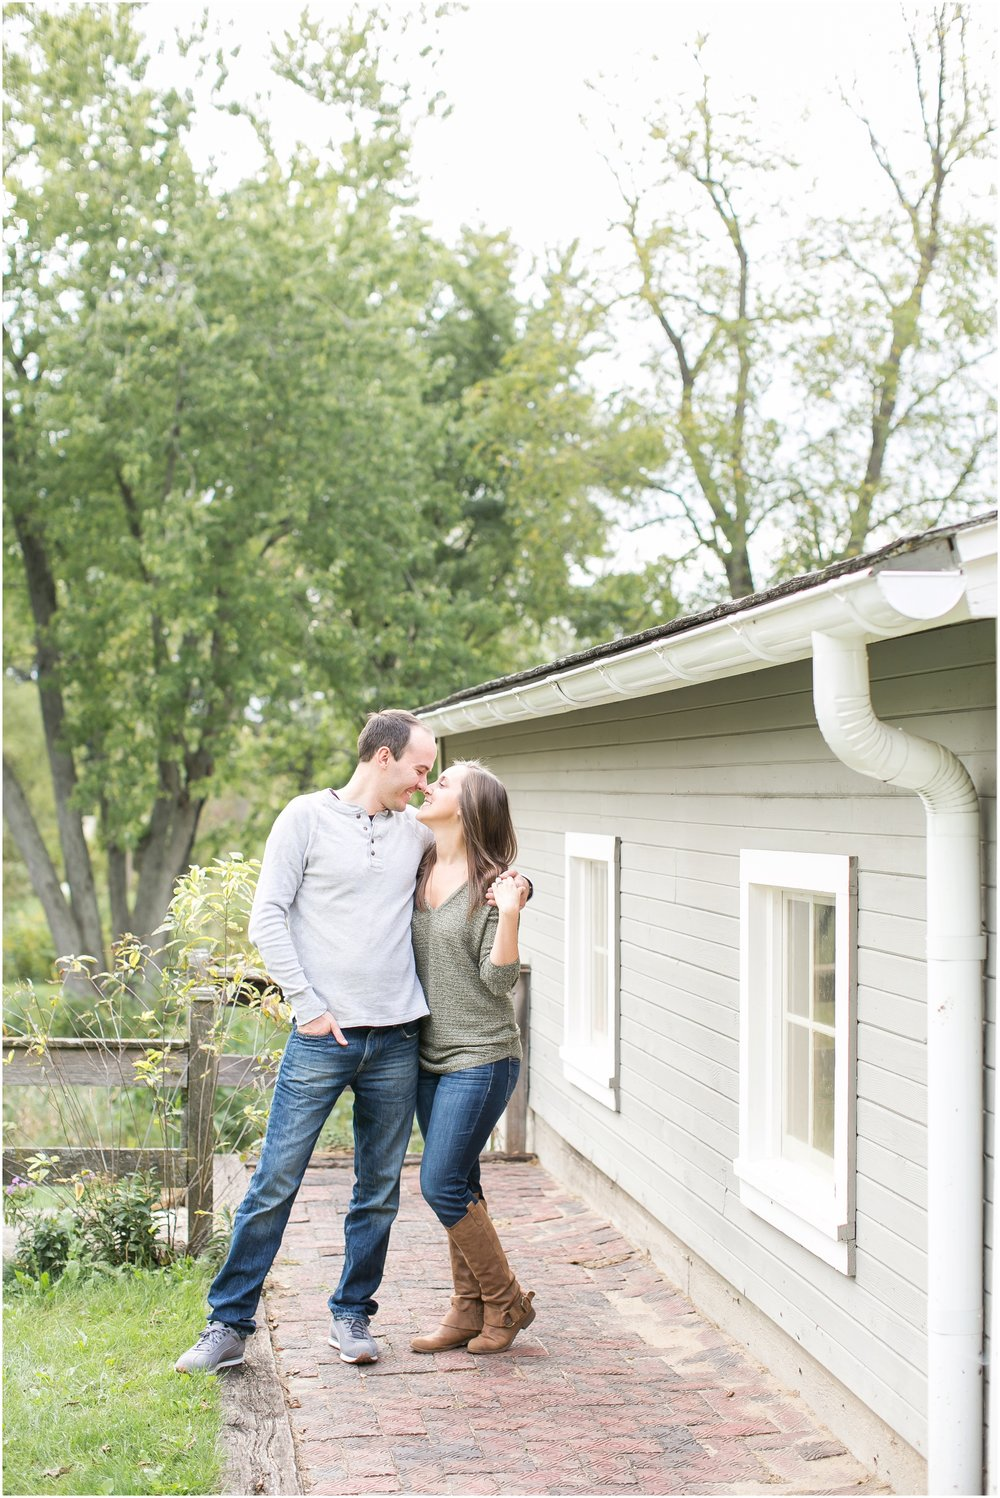 Beckman_Mill_Engagement_Session_Wisconsin_Wedding_Photographer_1588.jpg